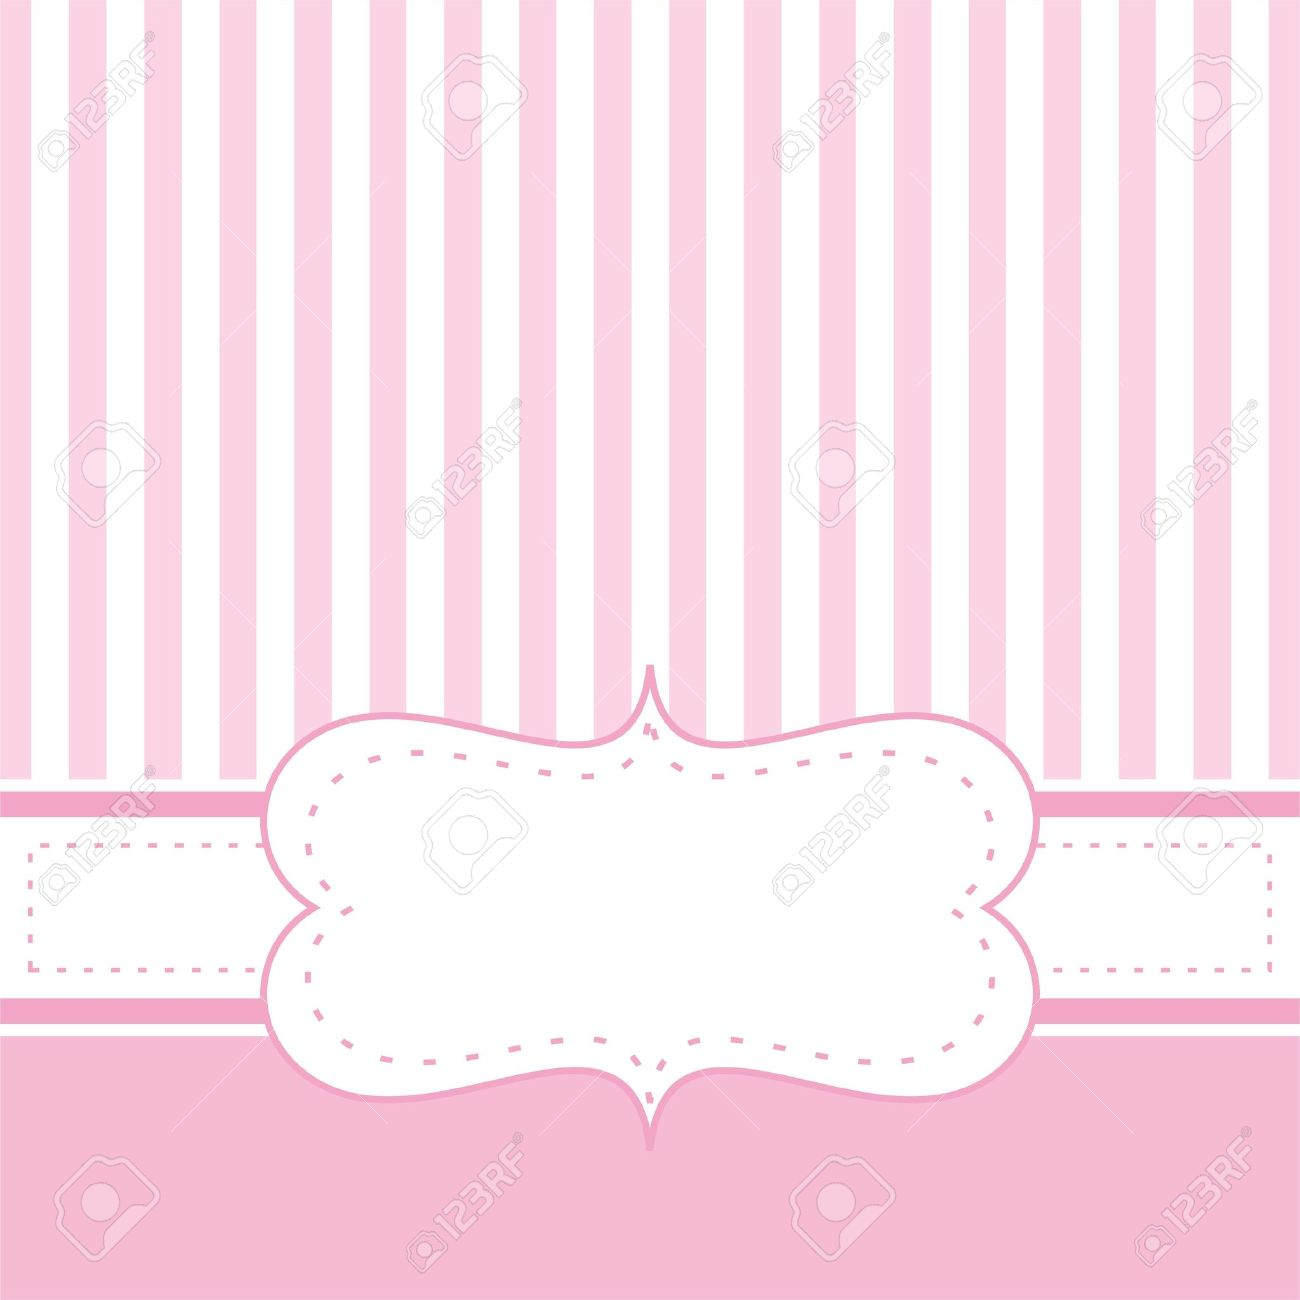 Card Invitation Template For Baby Shower Wedding Or Birthday - Pink baby shower invitation templates